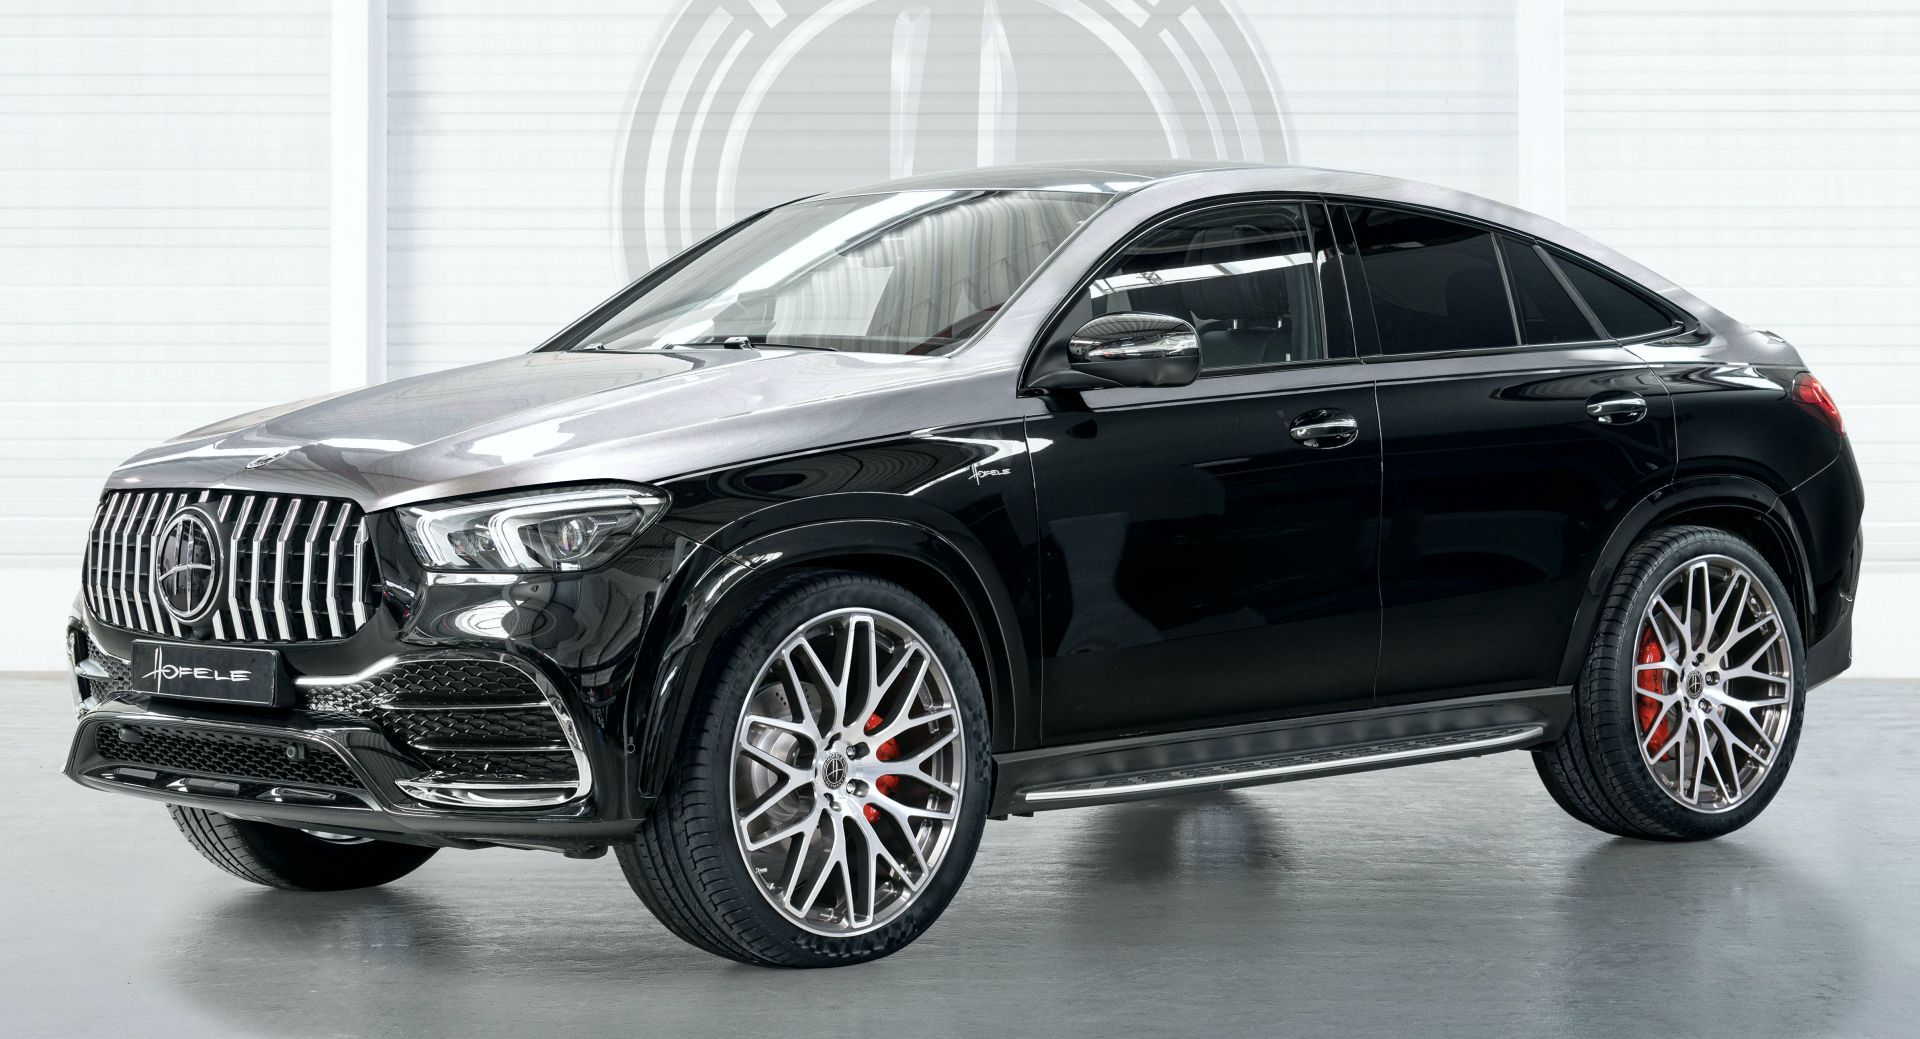 Hofele S Mercedes Gle Coupe Looks Like A Collab Between Maybach And Amg Carscoops Mercedes Benz Gle Coupe Mercedes Benz Gle Mercedes